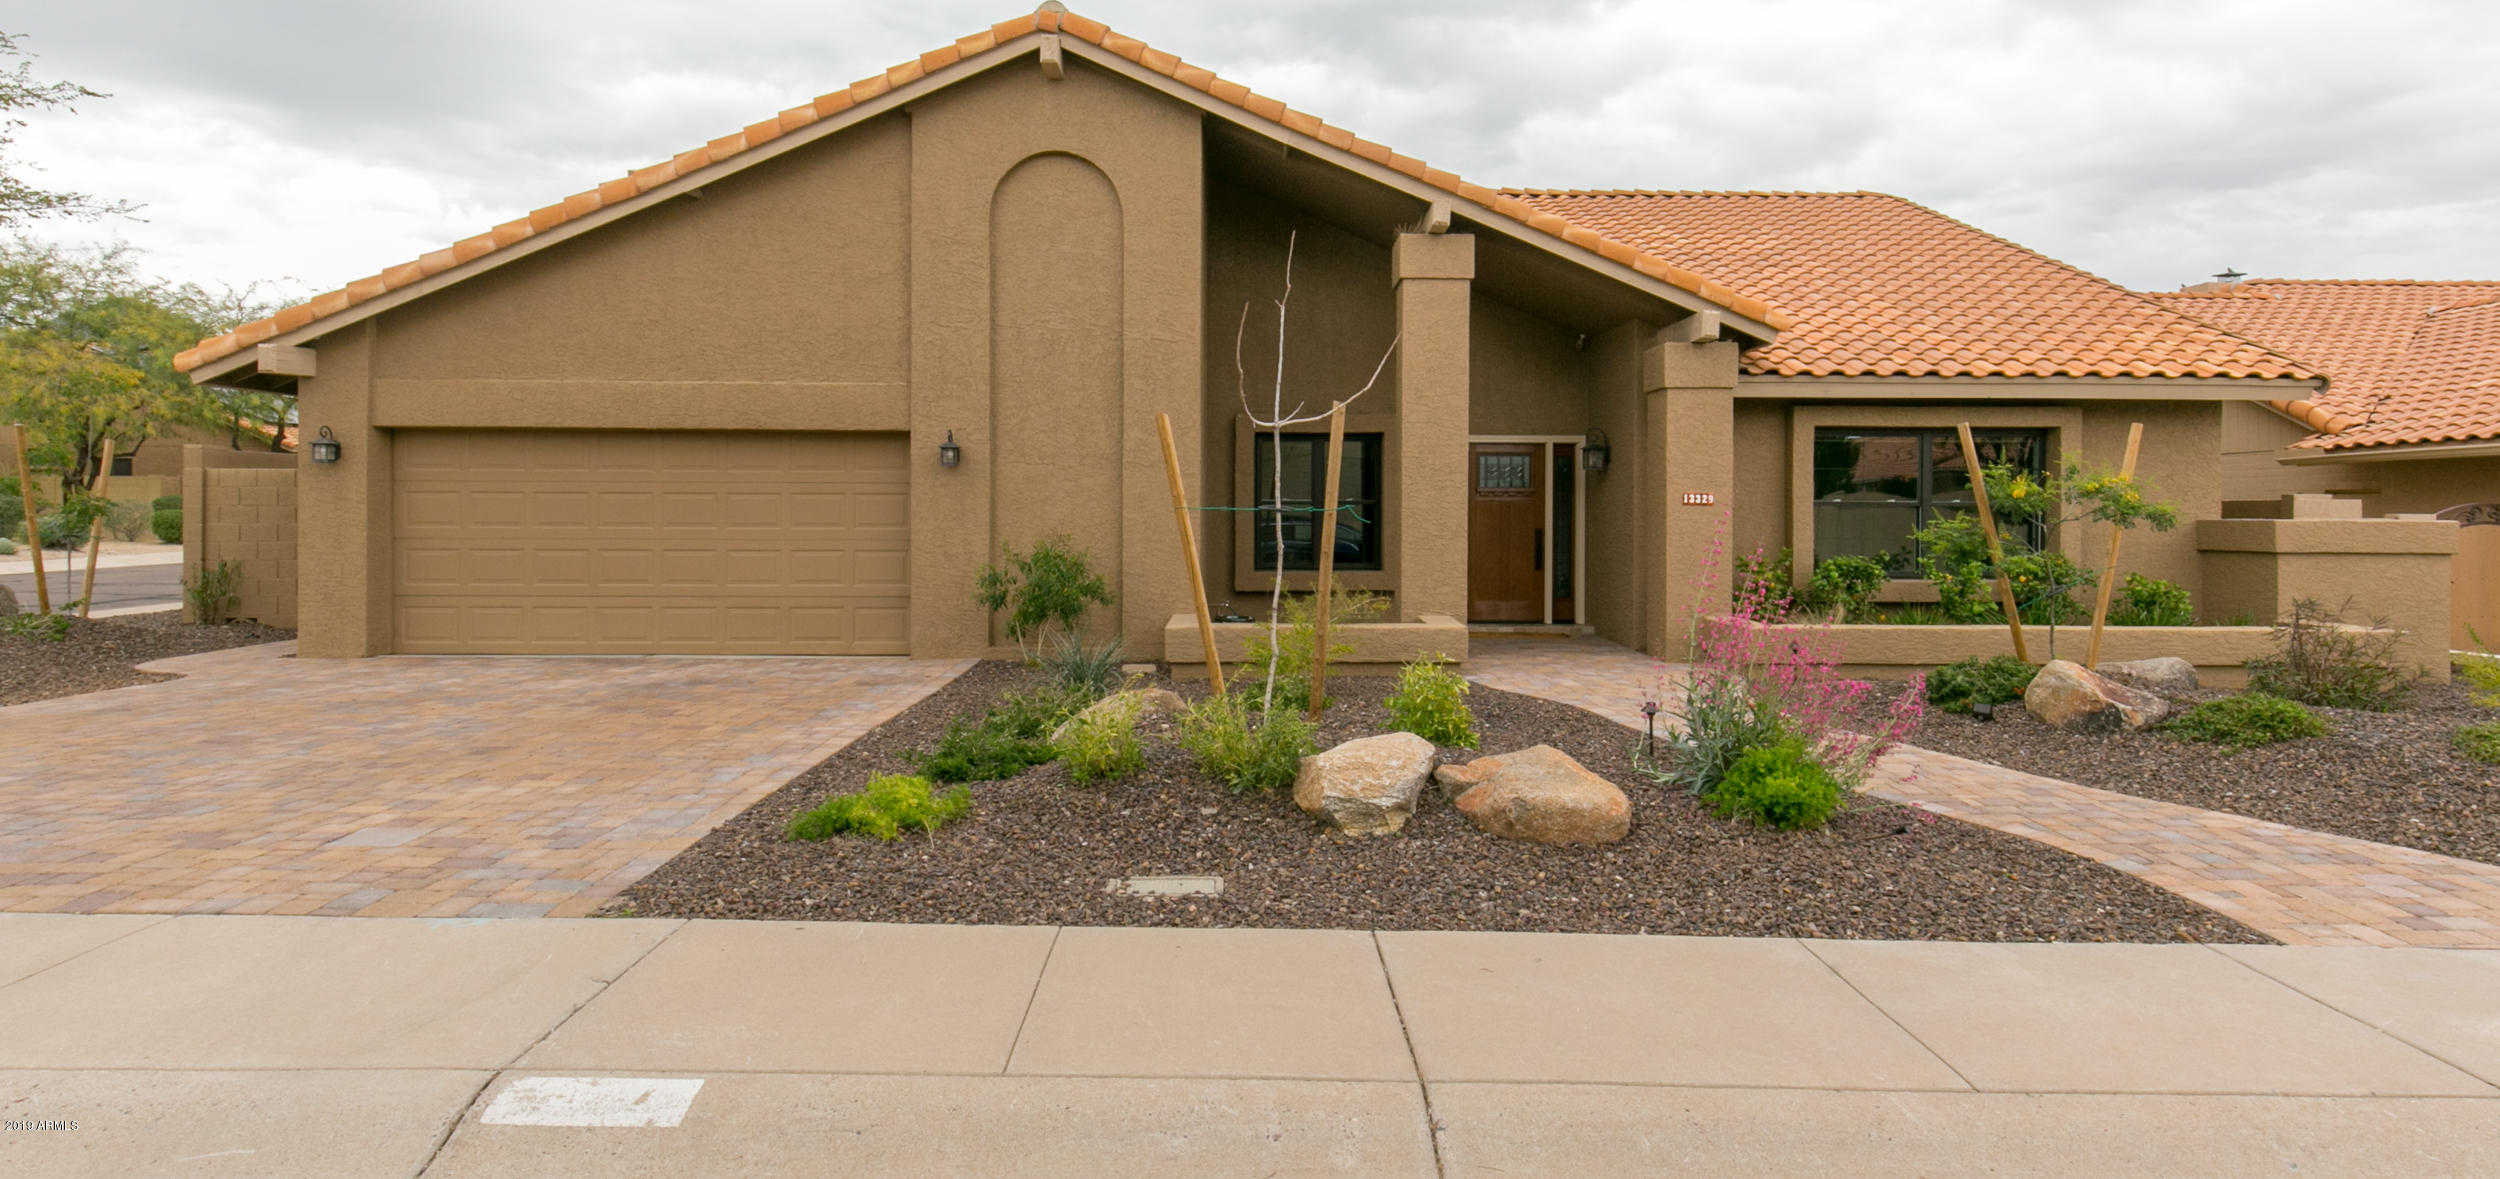 $519,950 - 3Br/2Ba - Home for Sale in Sweetwater Ranch Foothill, Scottsdale